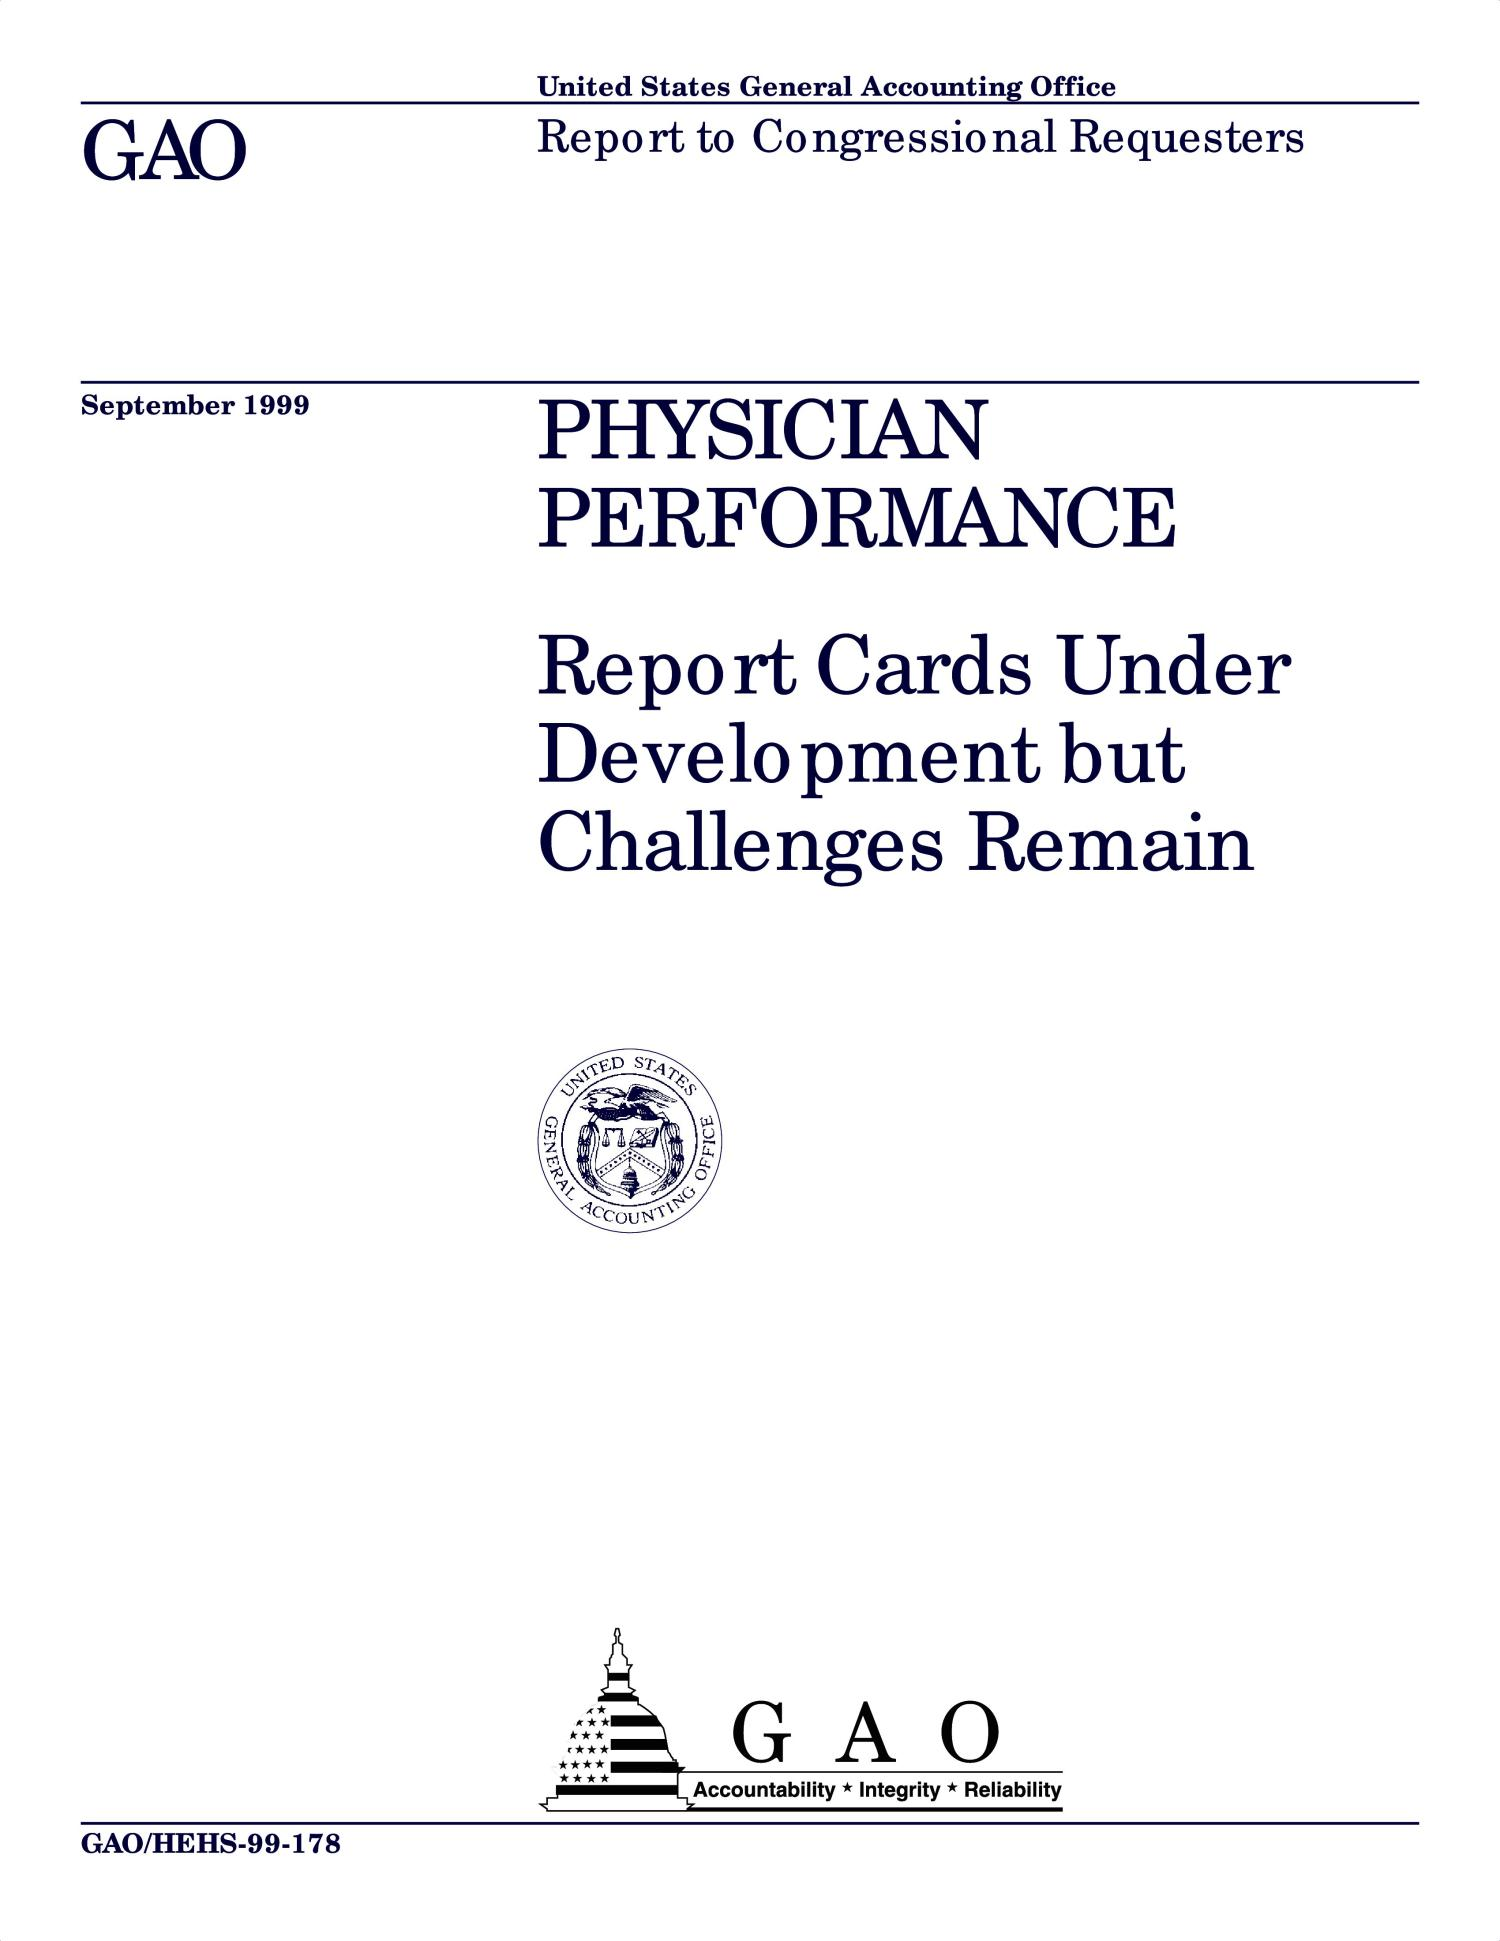 Physician Performance: Report Cards Under Development but Challenges Remain                                                                                                      [Sequence #]: 1 of 38